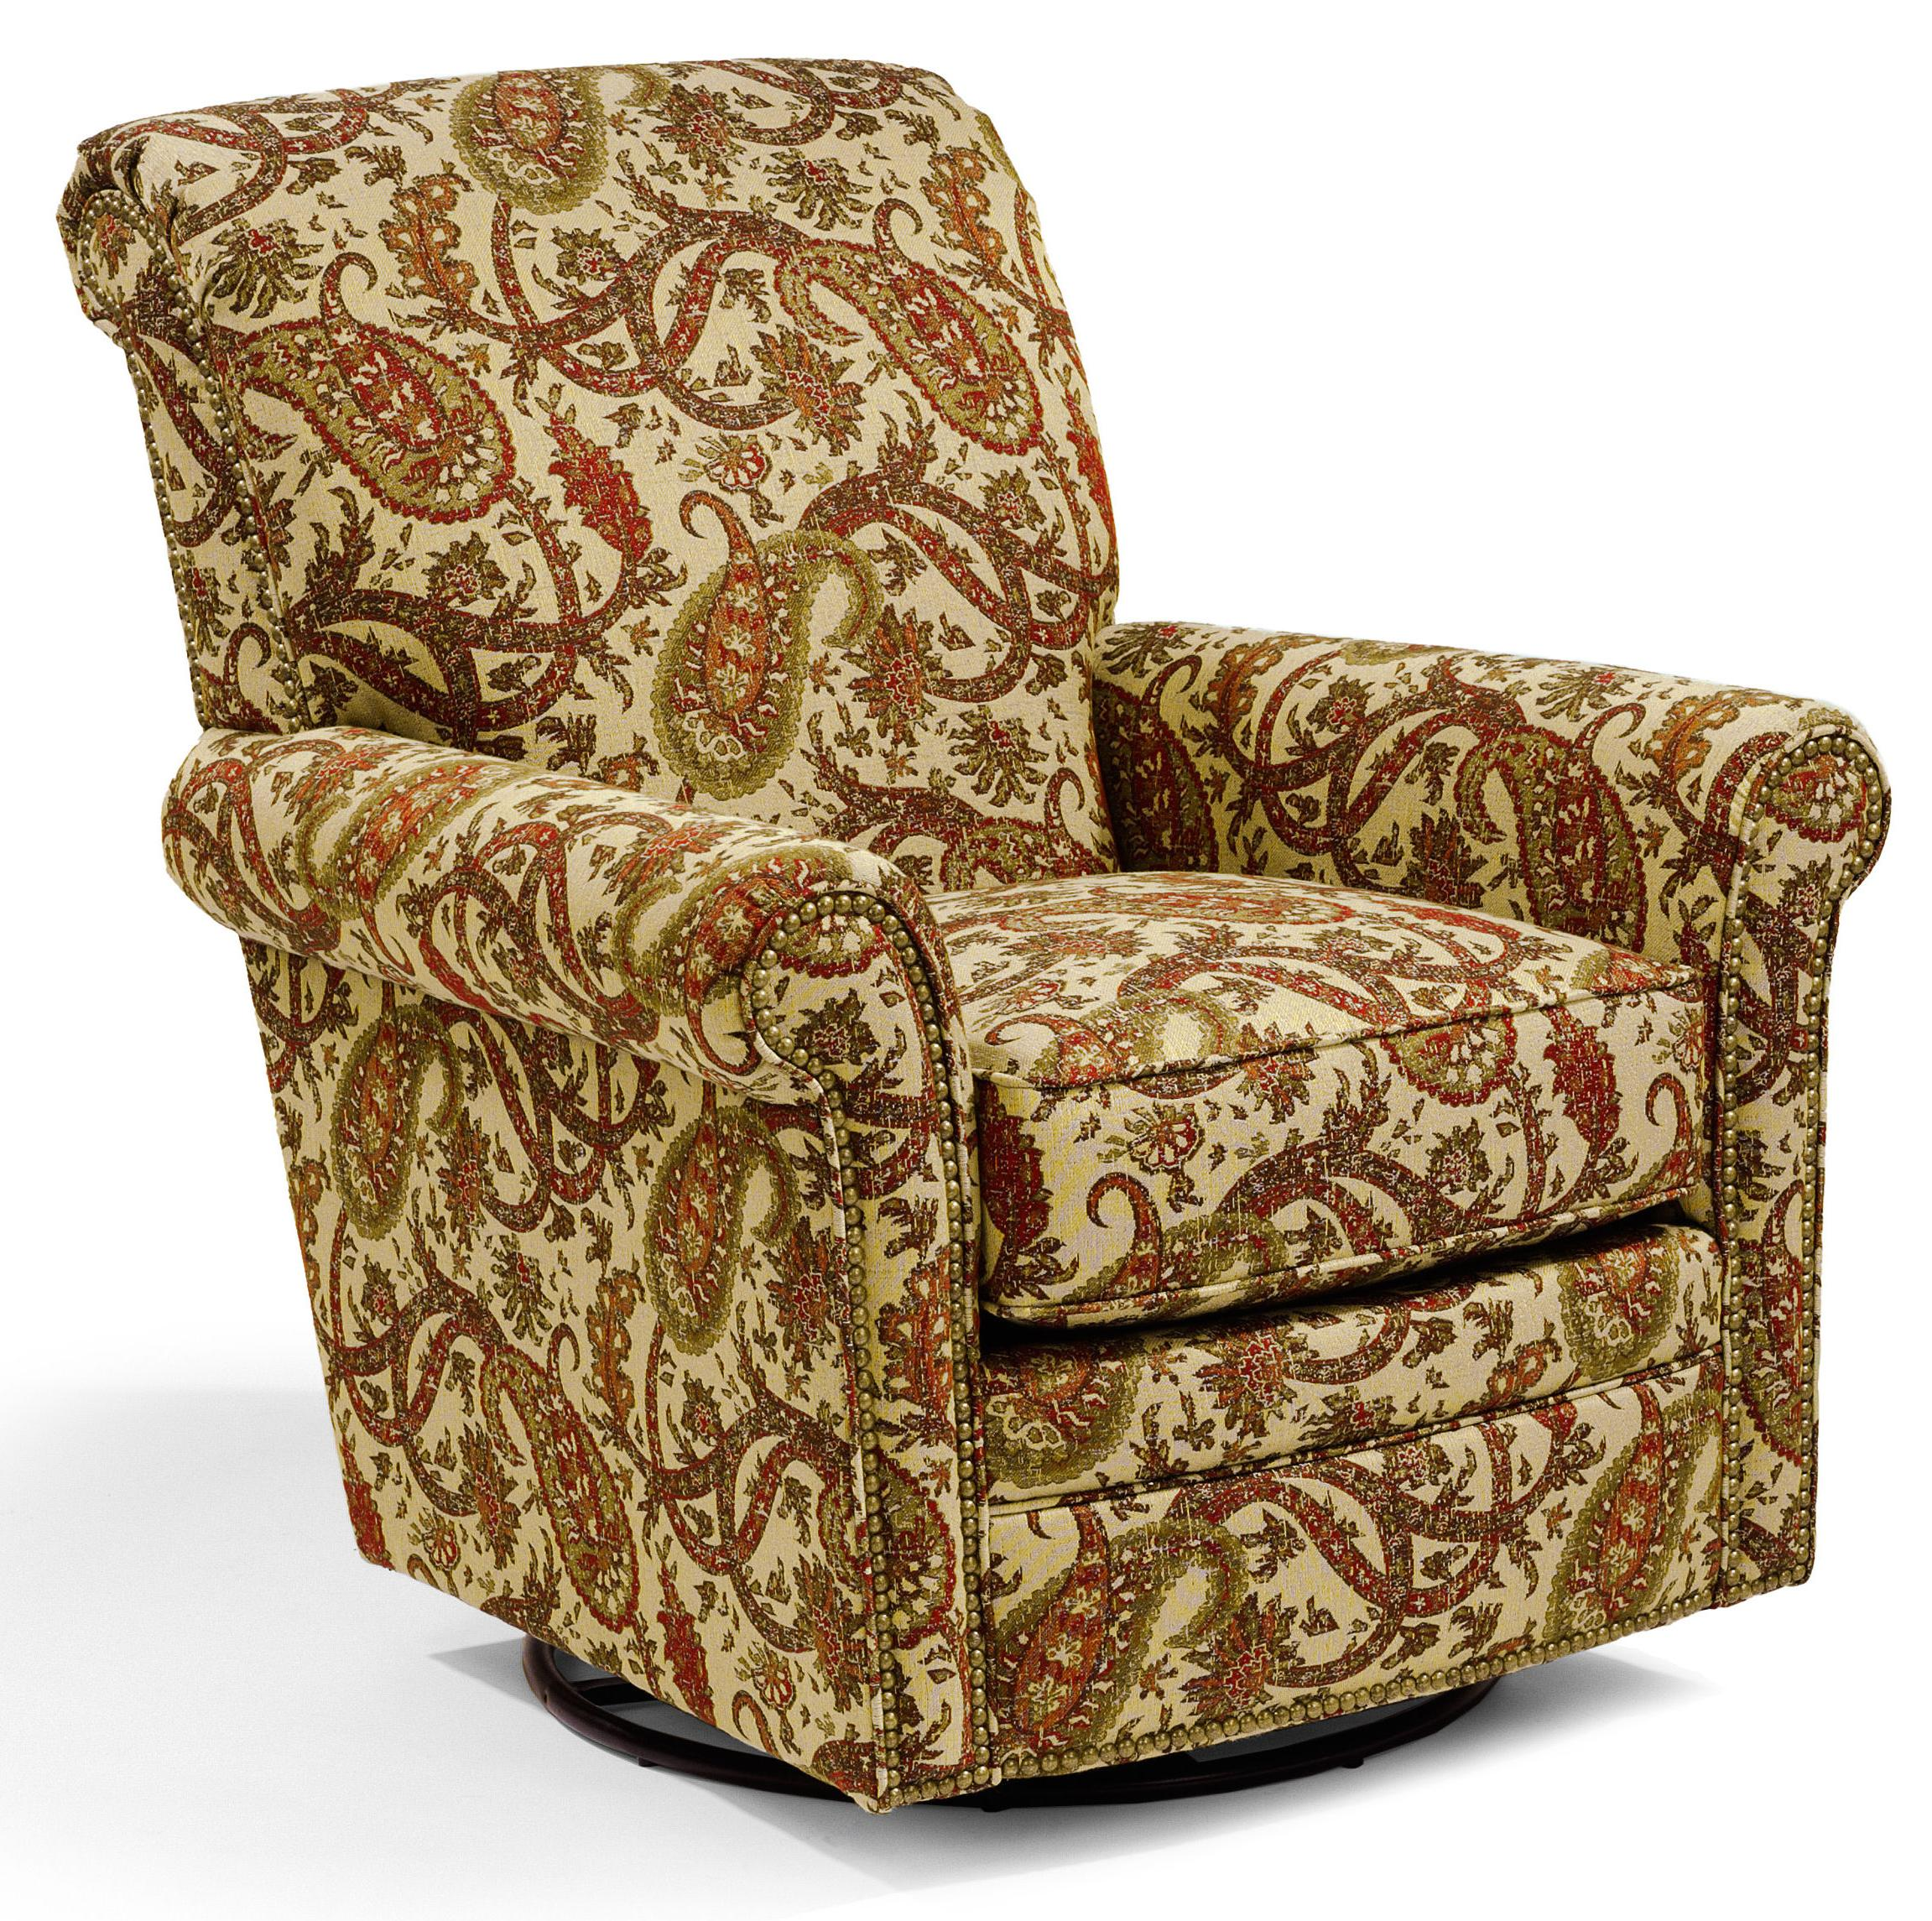 Accents Plaza Swivel Glider by Flexsteel at Factory Direct Furniture